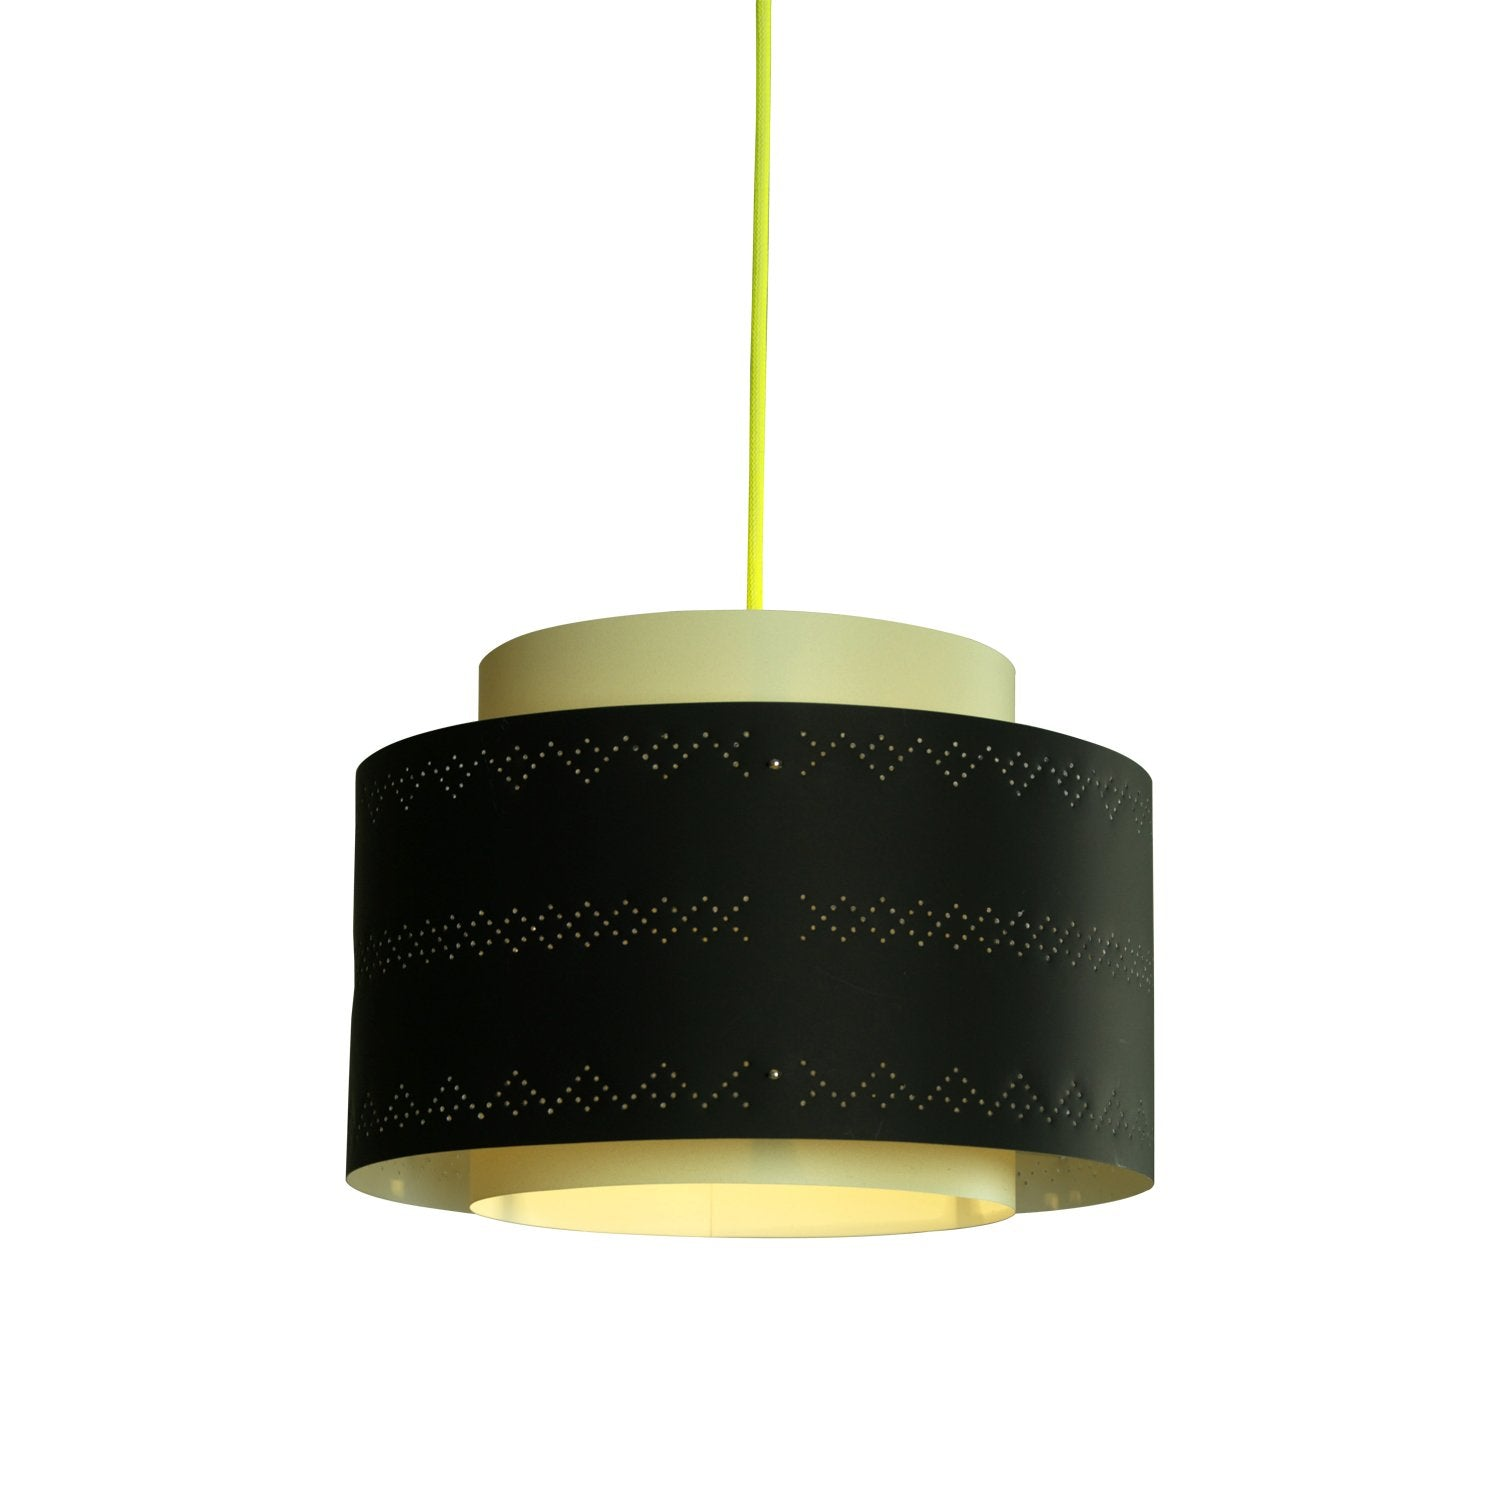 [LF1320BLKBGE] Venlo black beige  with yellow power cord SALE